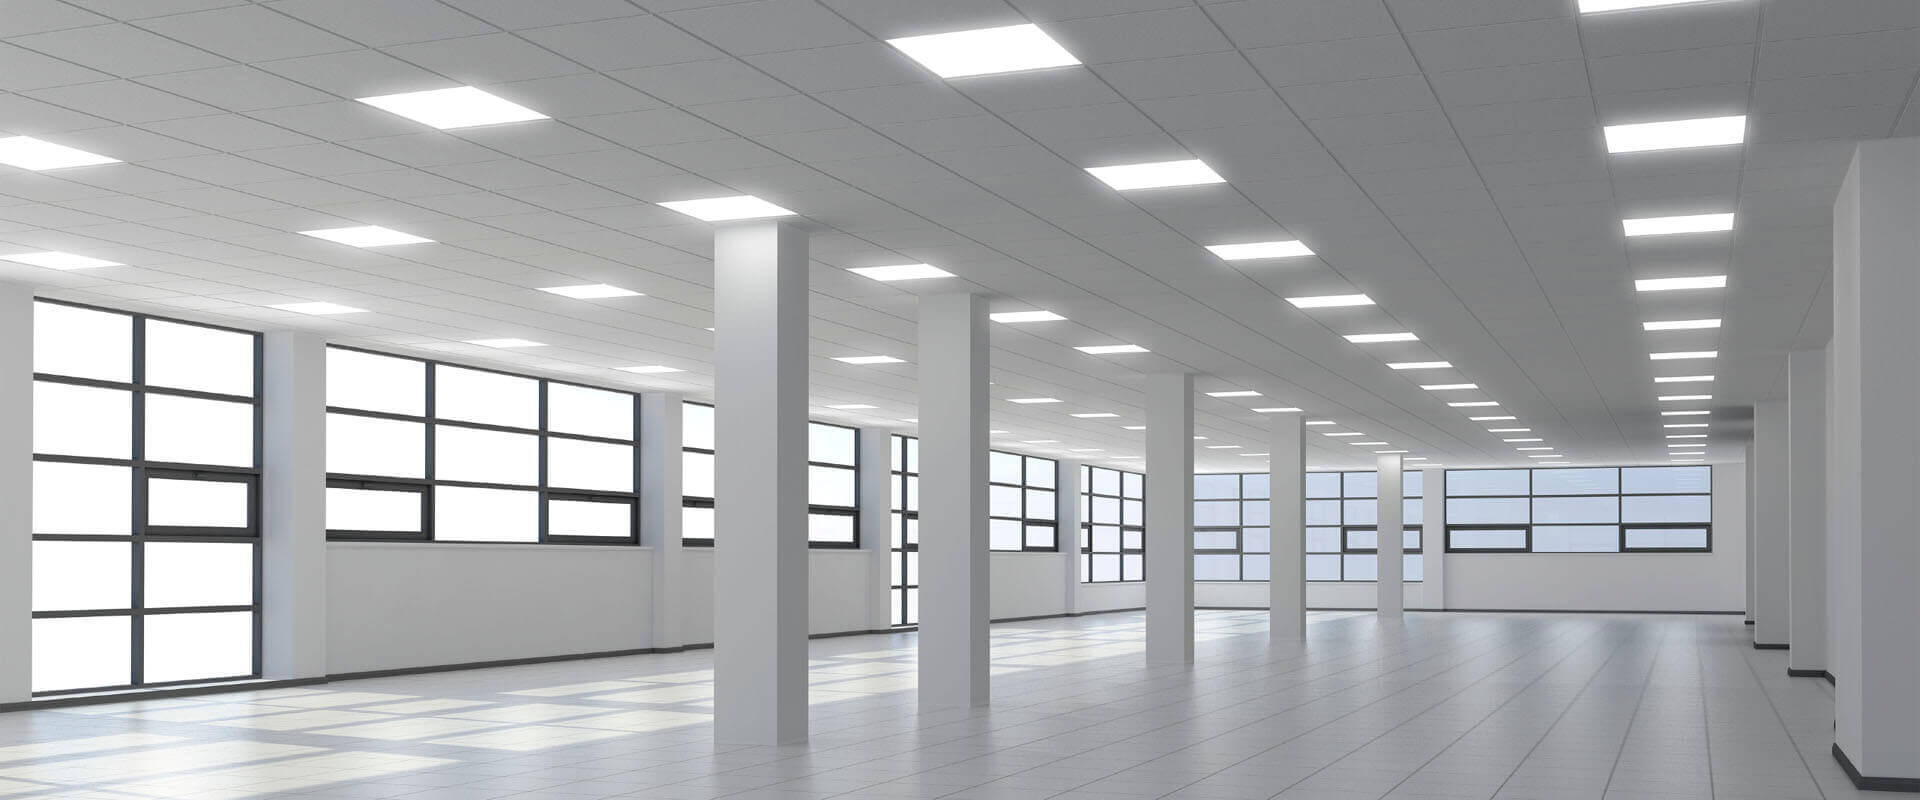 LED lighting services in Canvey Island